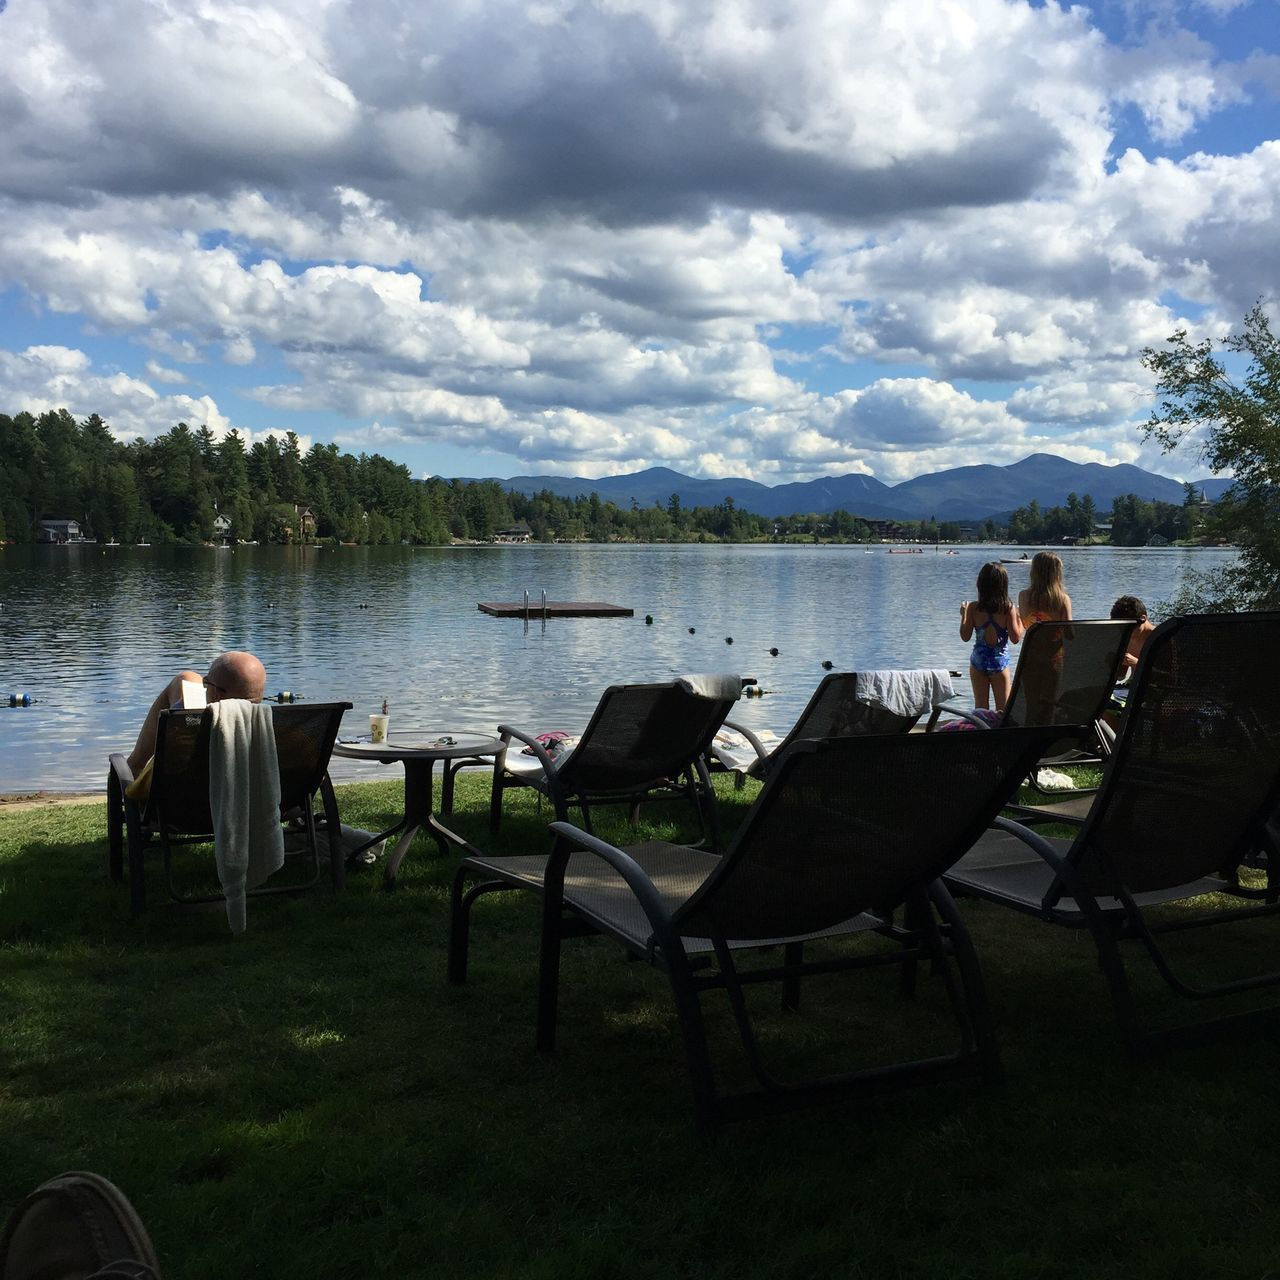 Sky And Clouds Adirondack Mountains Lake Placid Mirror Lake Mountain View Water Nature Beauty In Nature Lake Chair Sky Real People Men Leisure Activity Standing Full Length Grass Sitting Scenics Outdoors Cloud - Sky Rear View Day Young Adult Tree